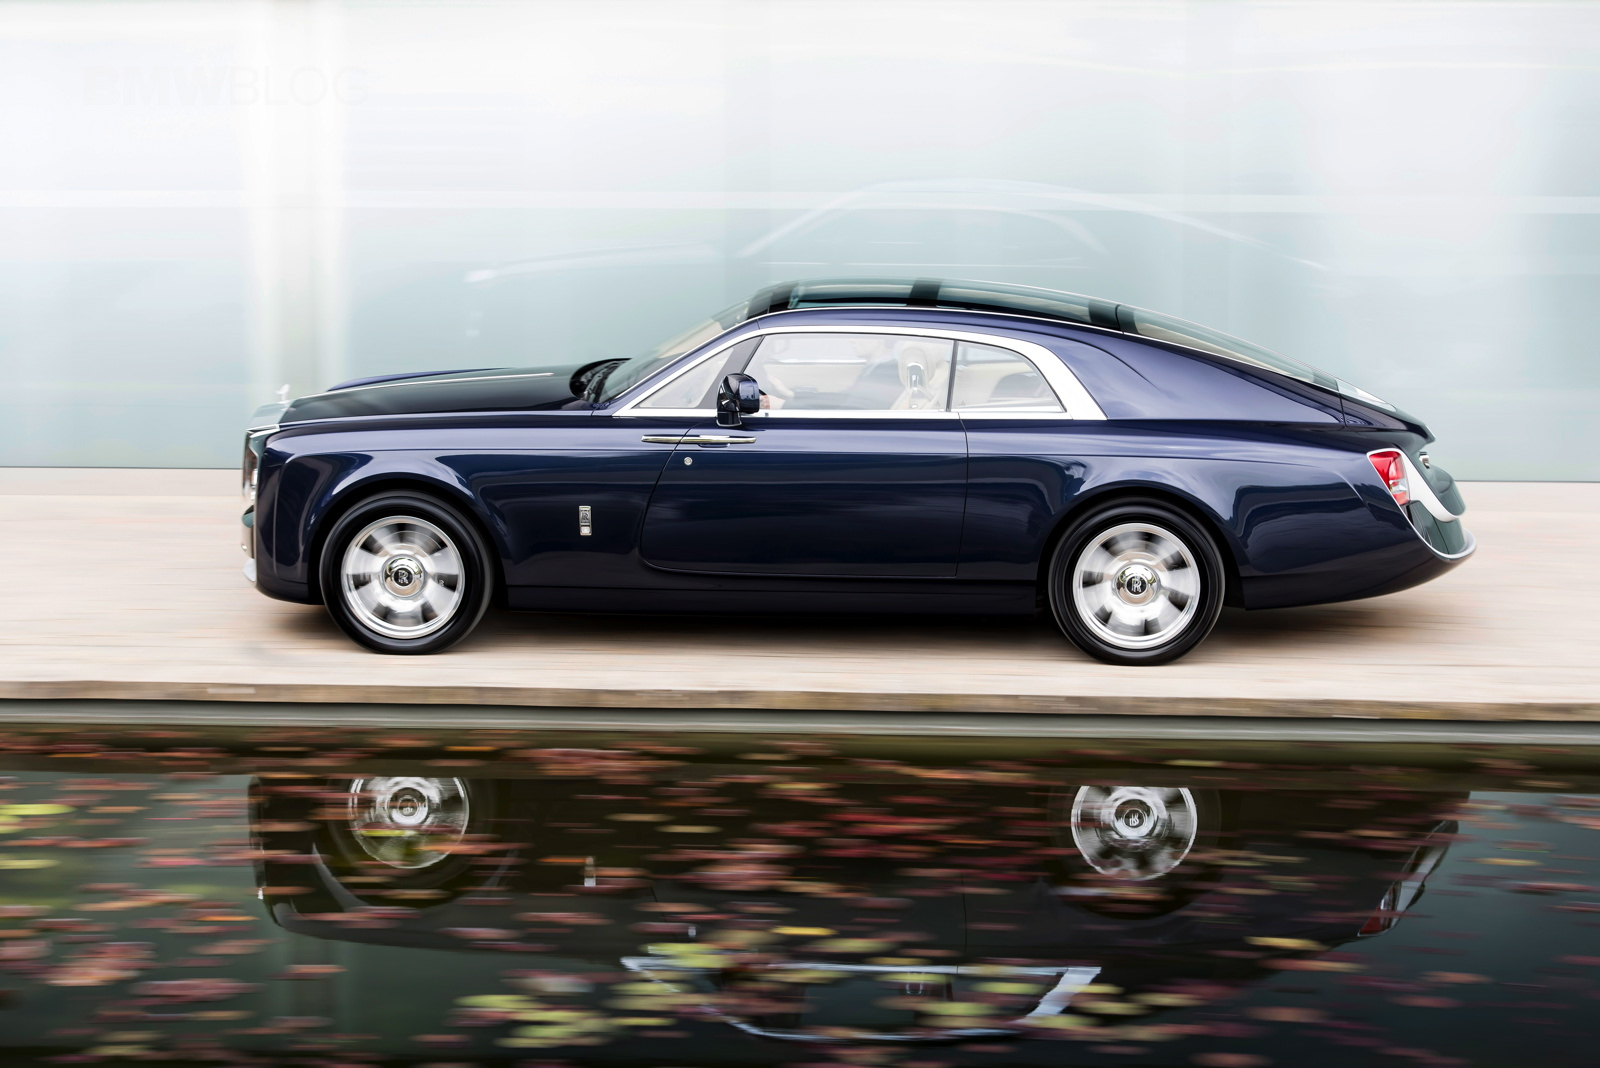 Demand for Coach Built Rolls-Royce Cars Higher than Plant Capacity